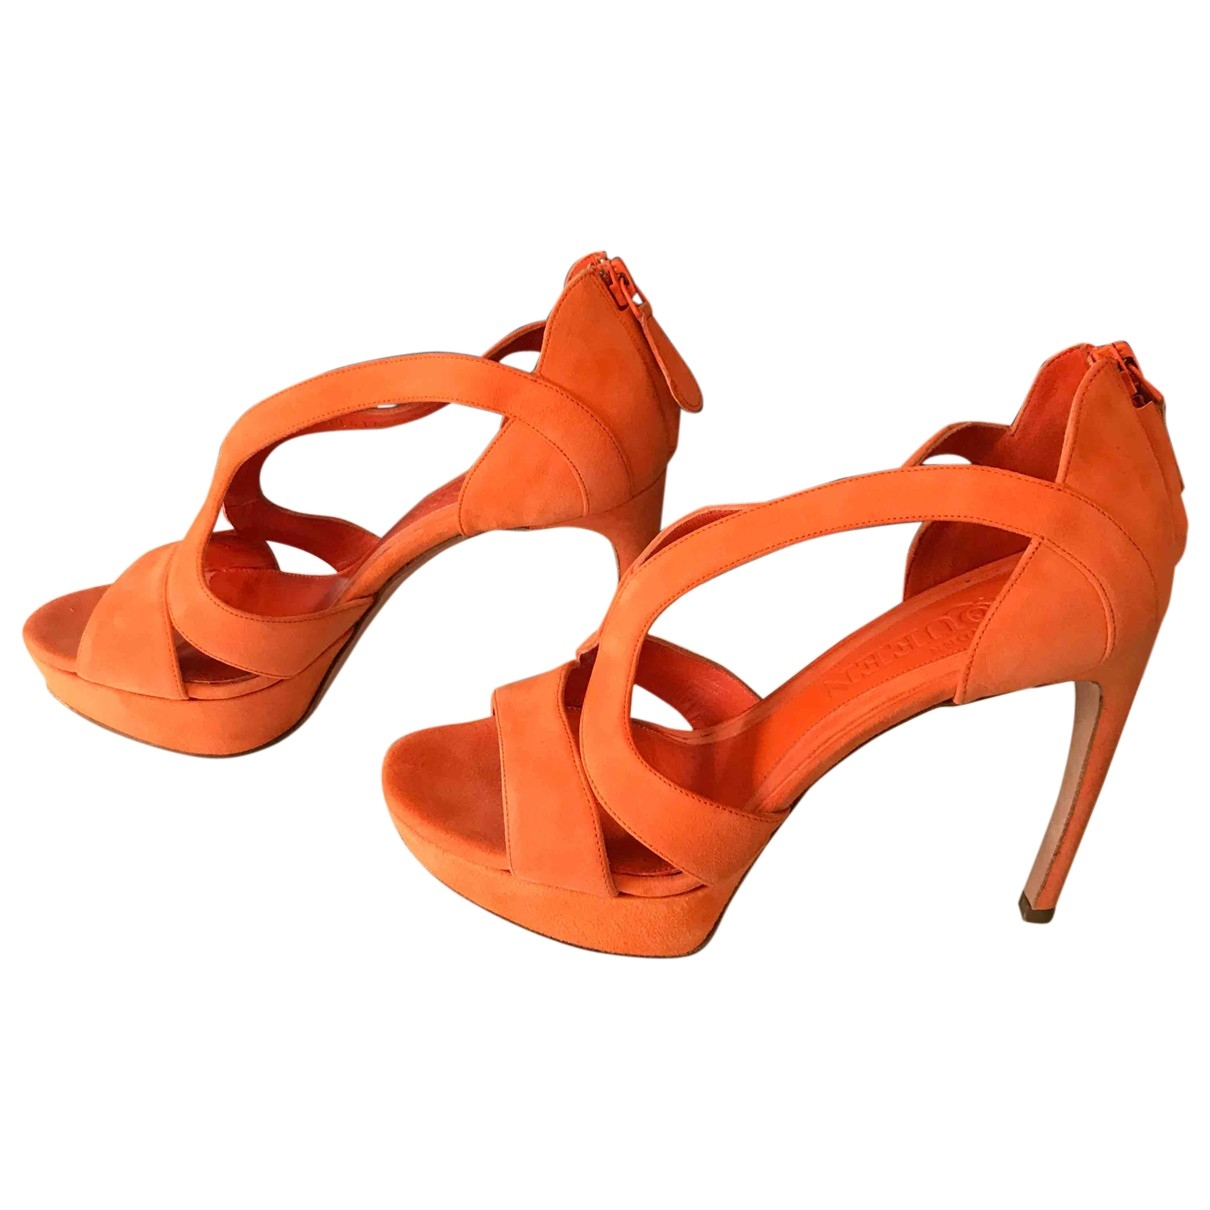 Alexander Mcqueen \N Sandalen in  Orange Veloursleder